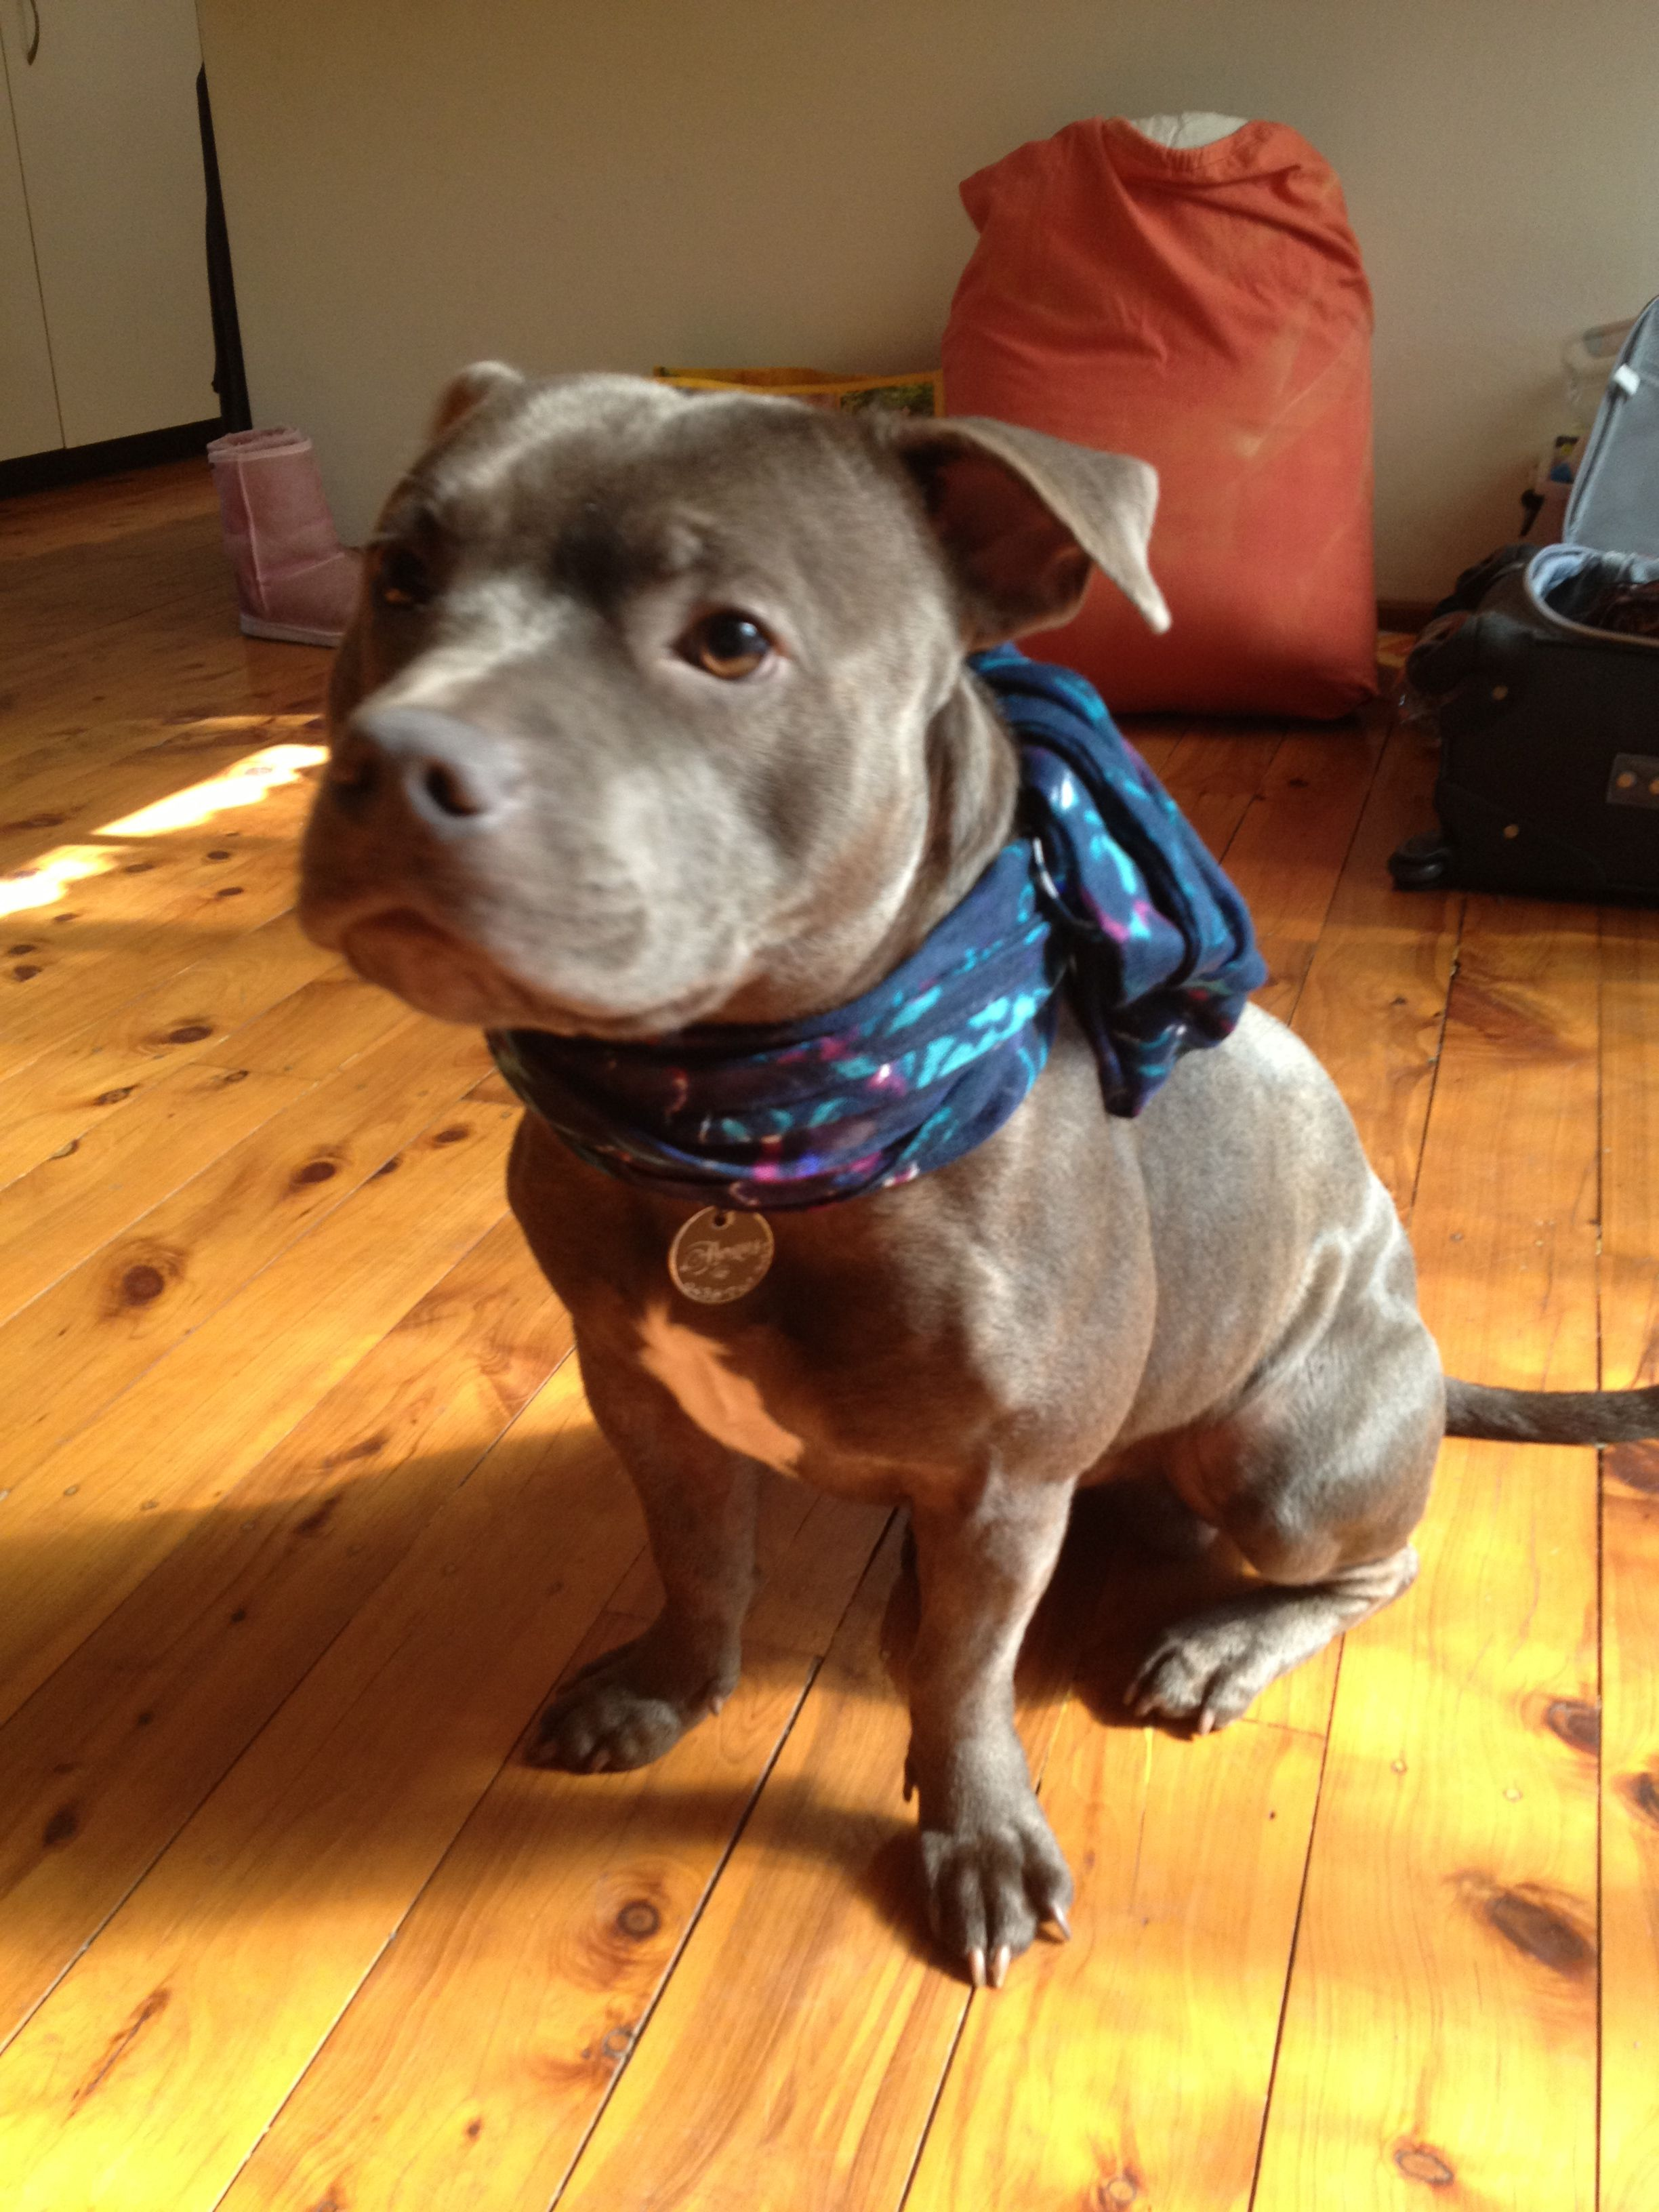 Blue Staffy Angus 1 Year Old Dog Love Baby Animals Sweet Dogs